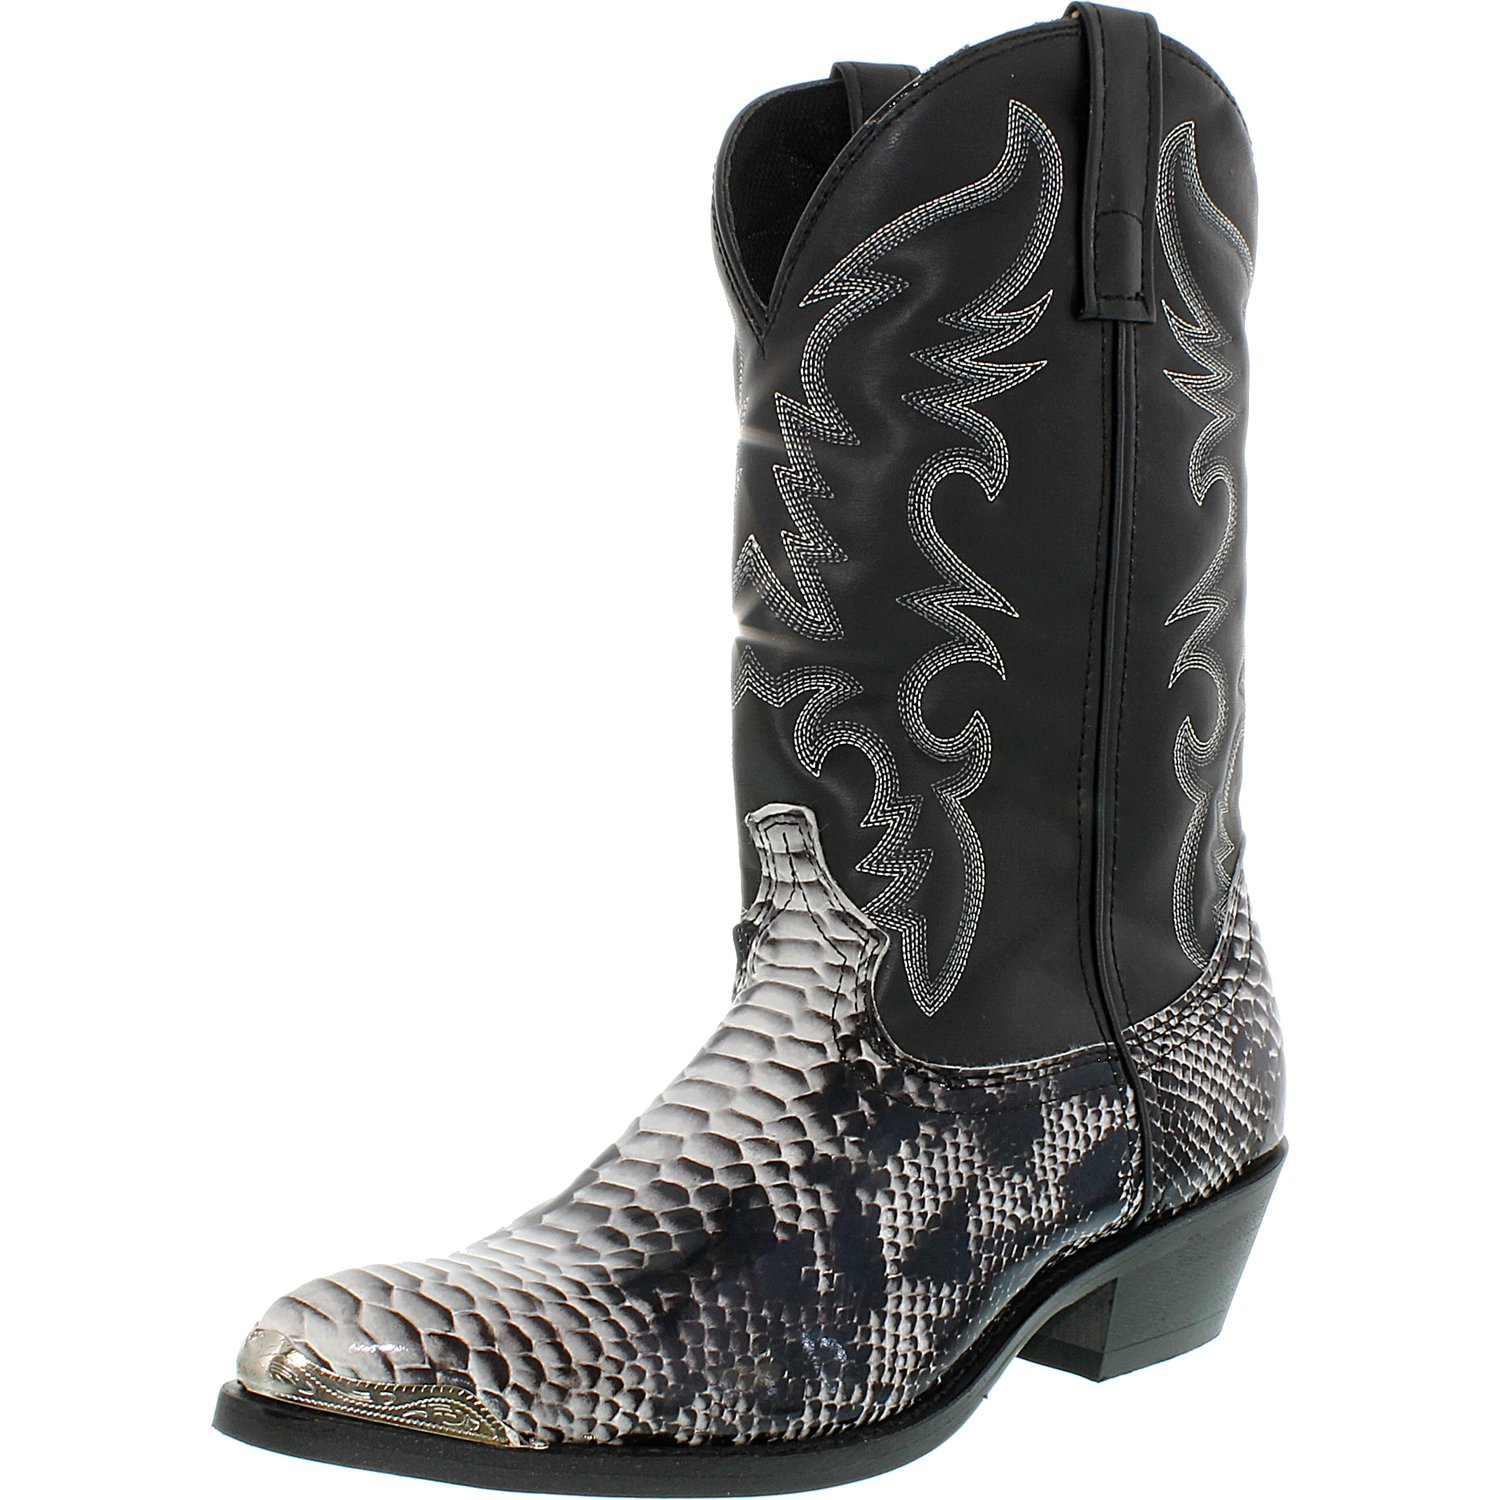 Laredo Men's Monty Synthetic Mid-Calf Fabric Boot by Laredo